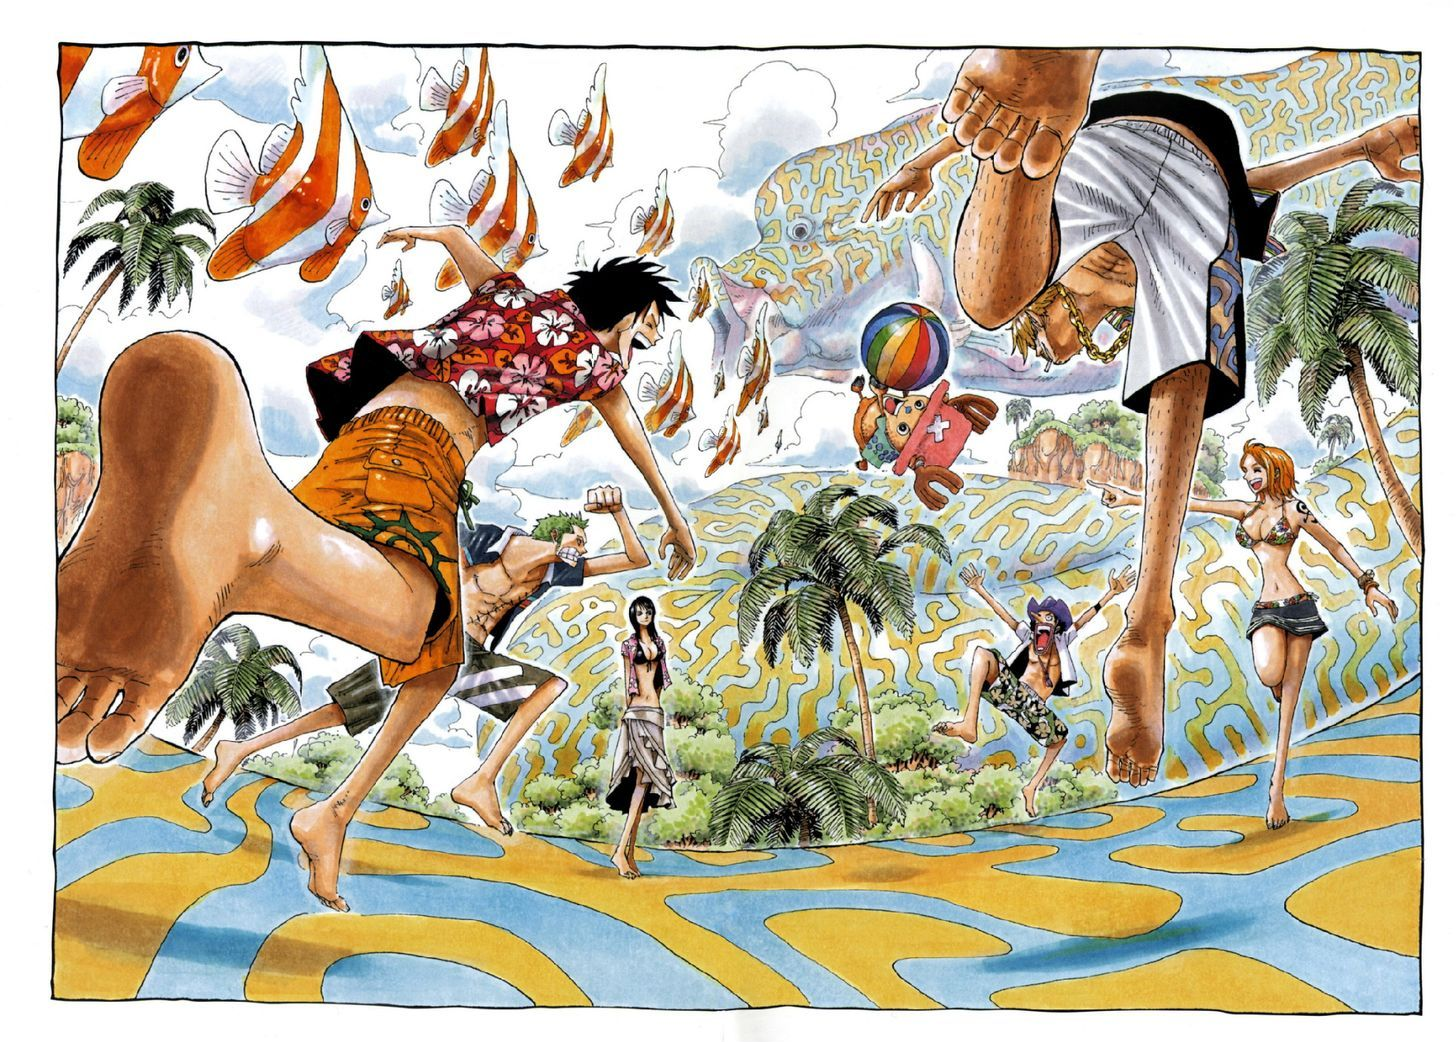 https://im.nineanime.com/comics/pic9/32/96/2682/OnePiece3340461.jpg Page 1